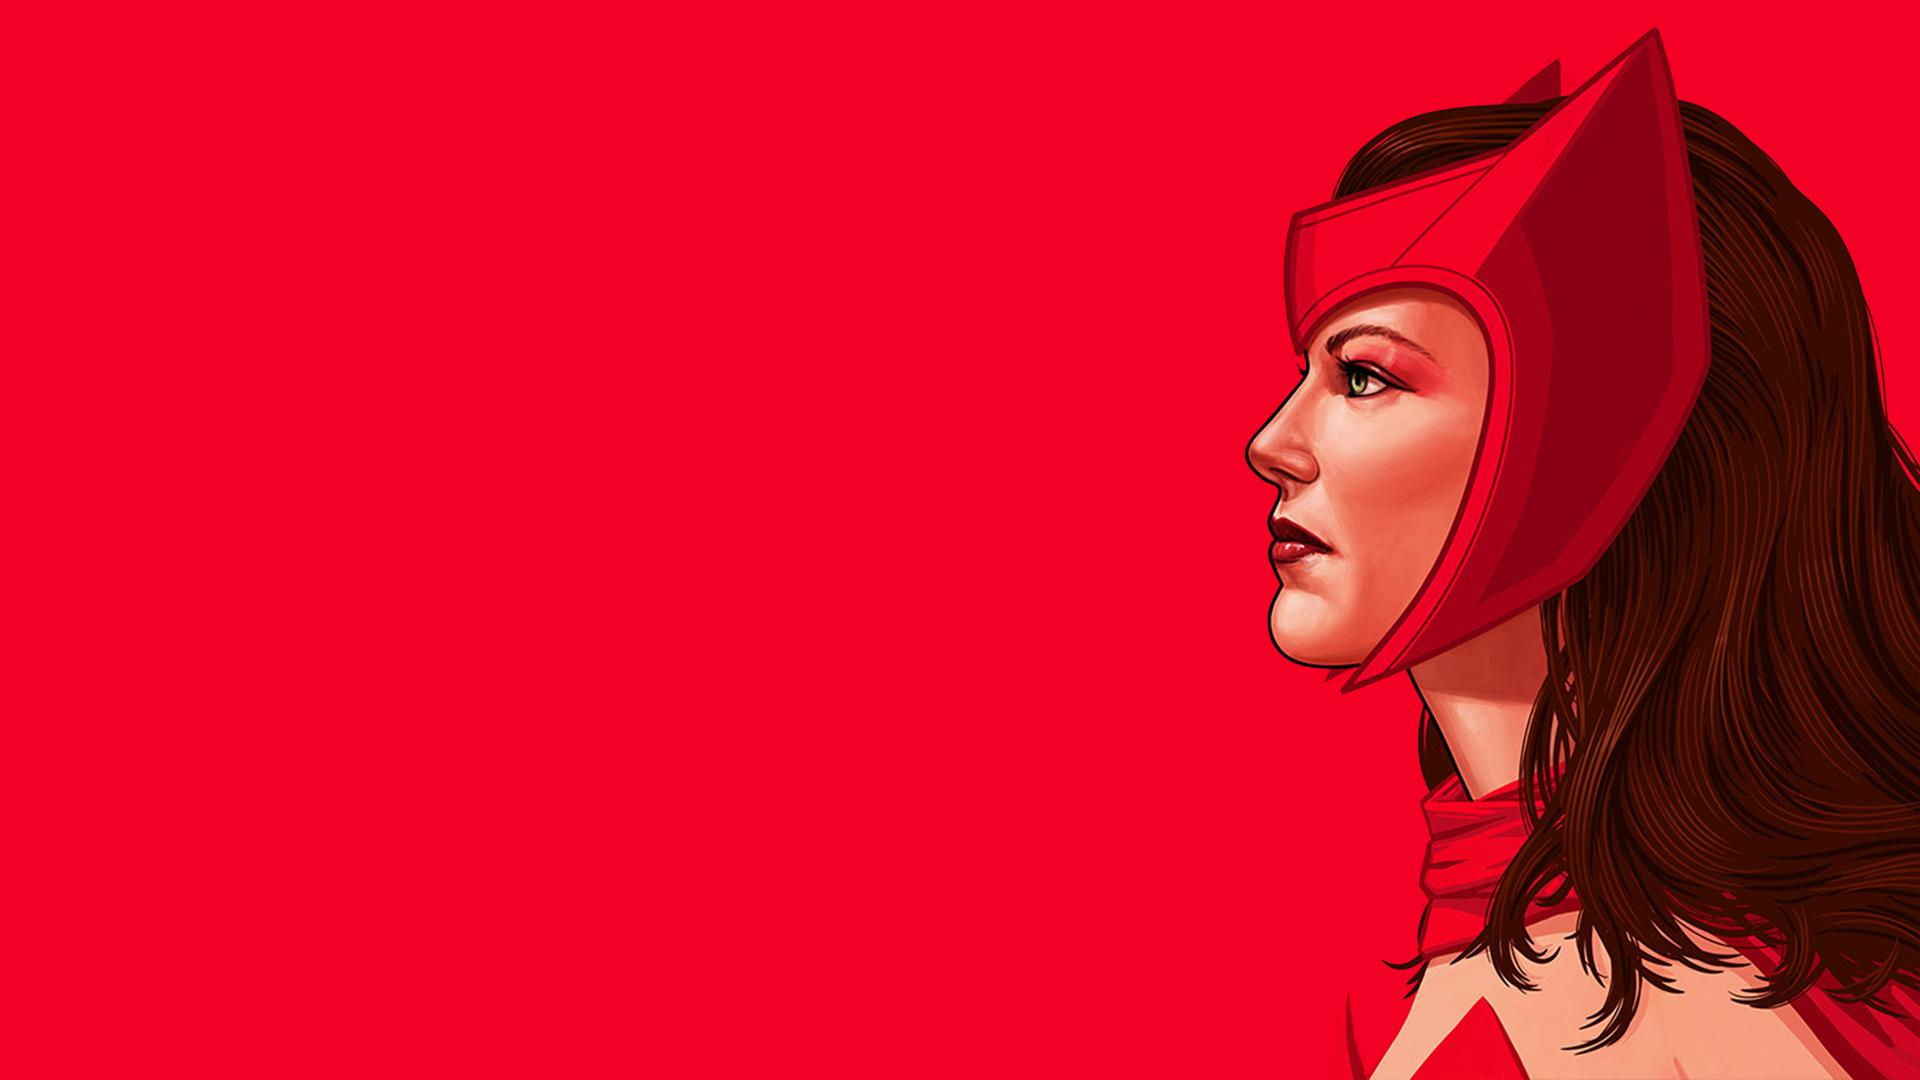 Scarlet Witch Full HD Wallpaper And Background Image